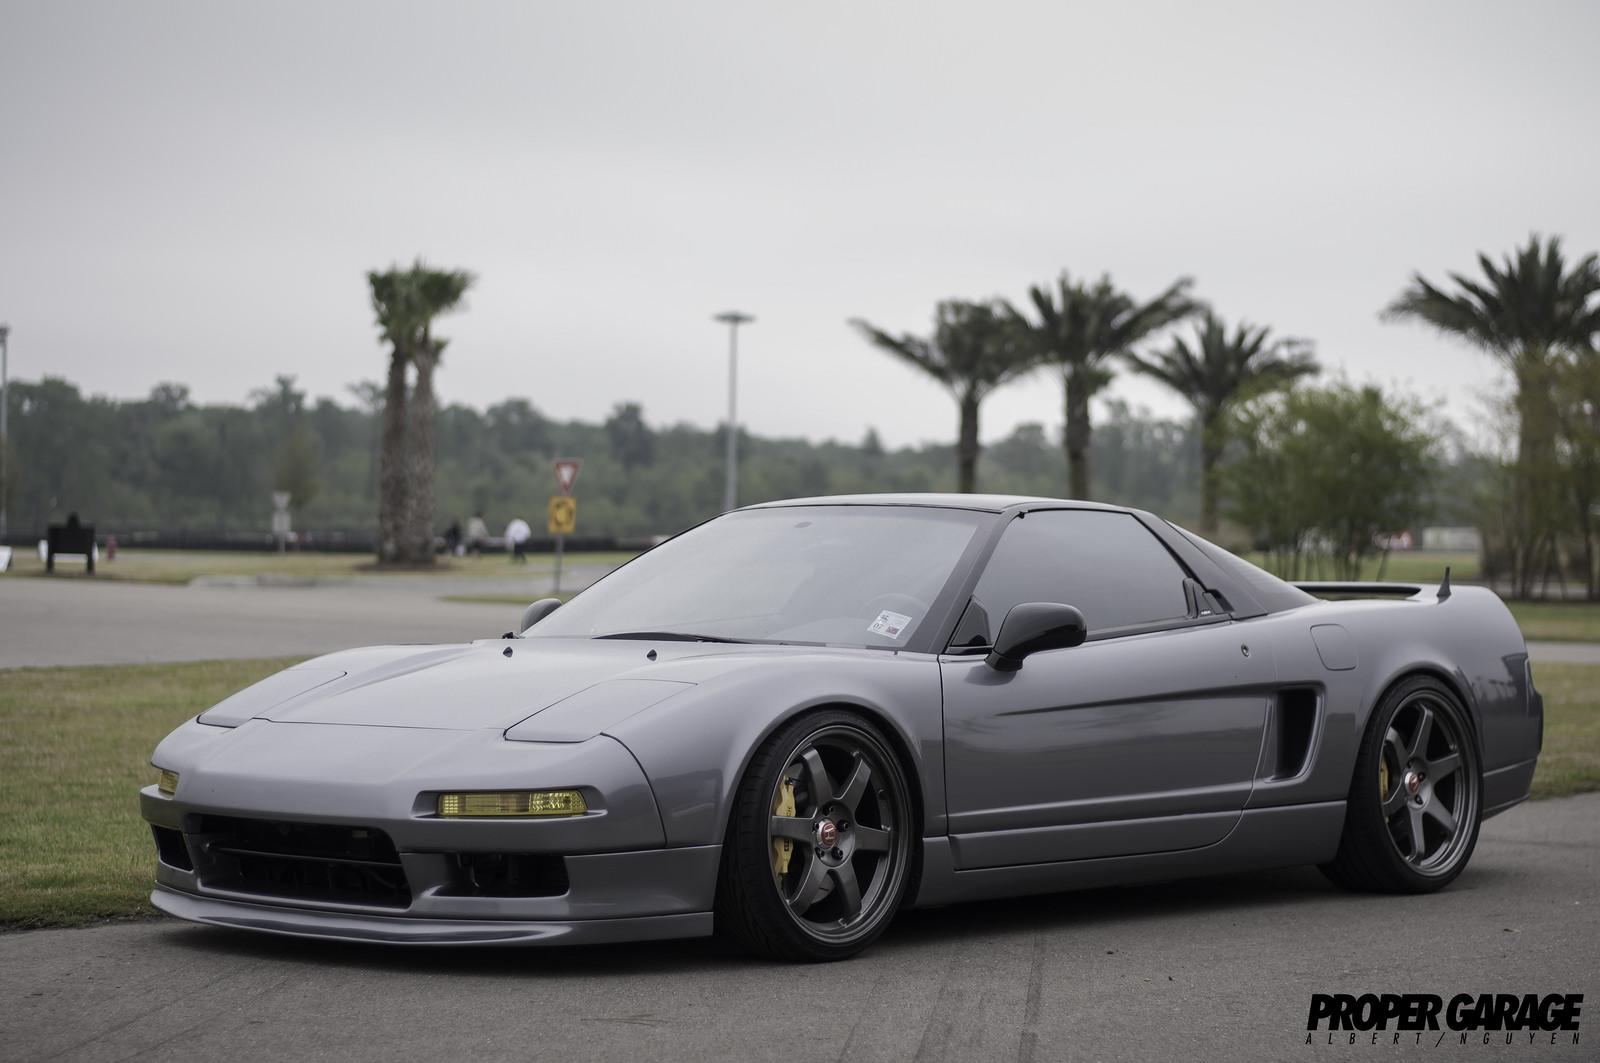 Incredibly Clean Acura Nsx Stancenation Form